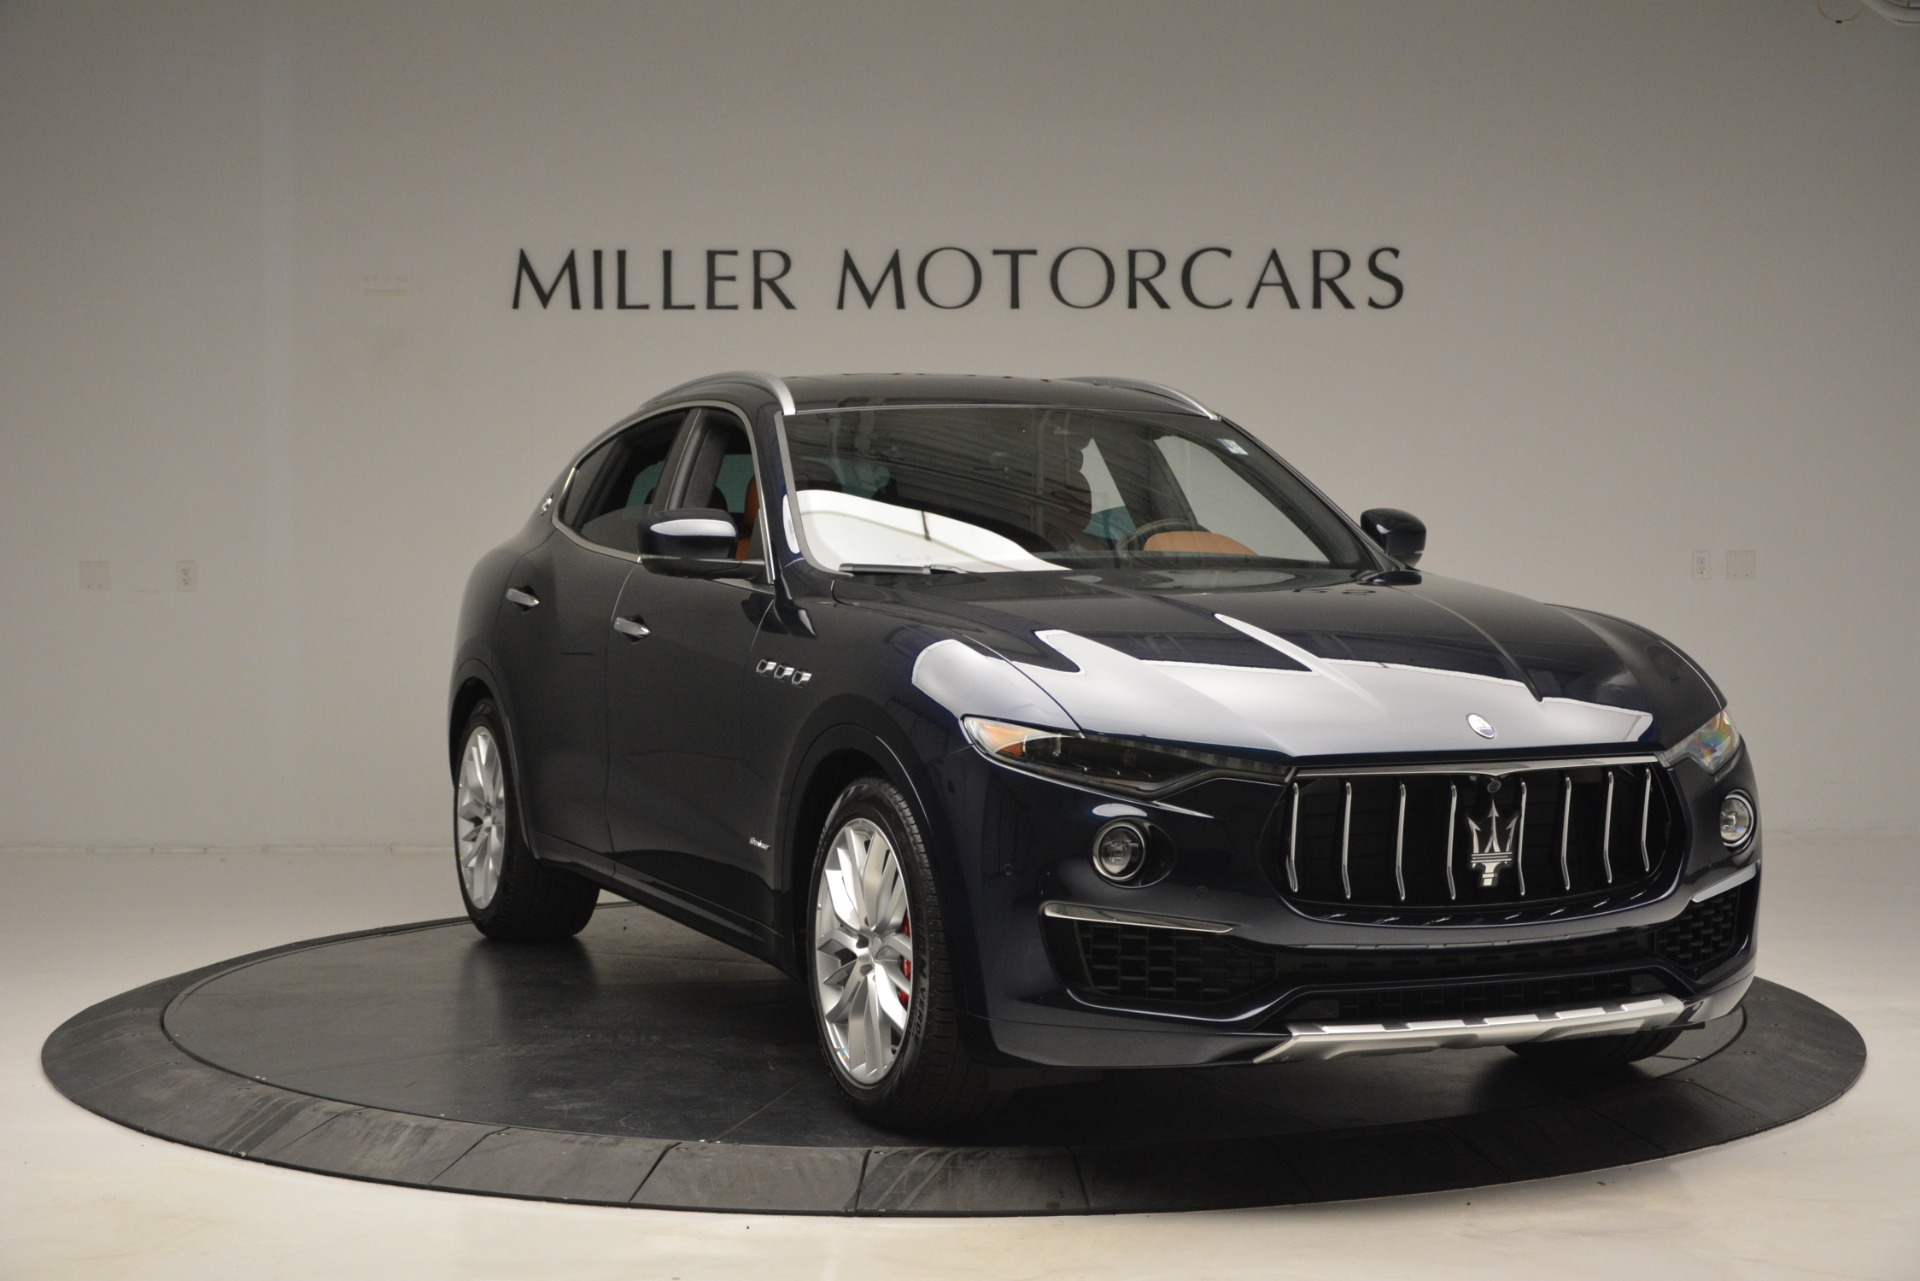 New 2019 Maserati Levante S Q4 GranLusso For Sale In Westport, CT 2868_p16